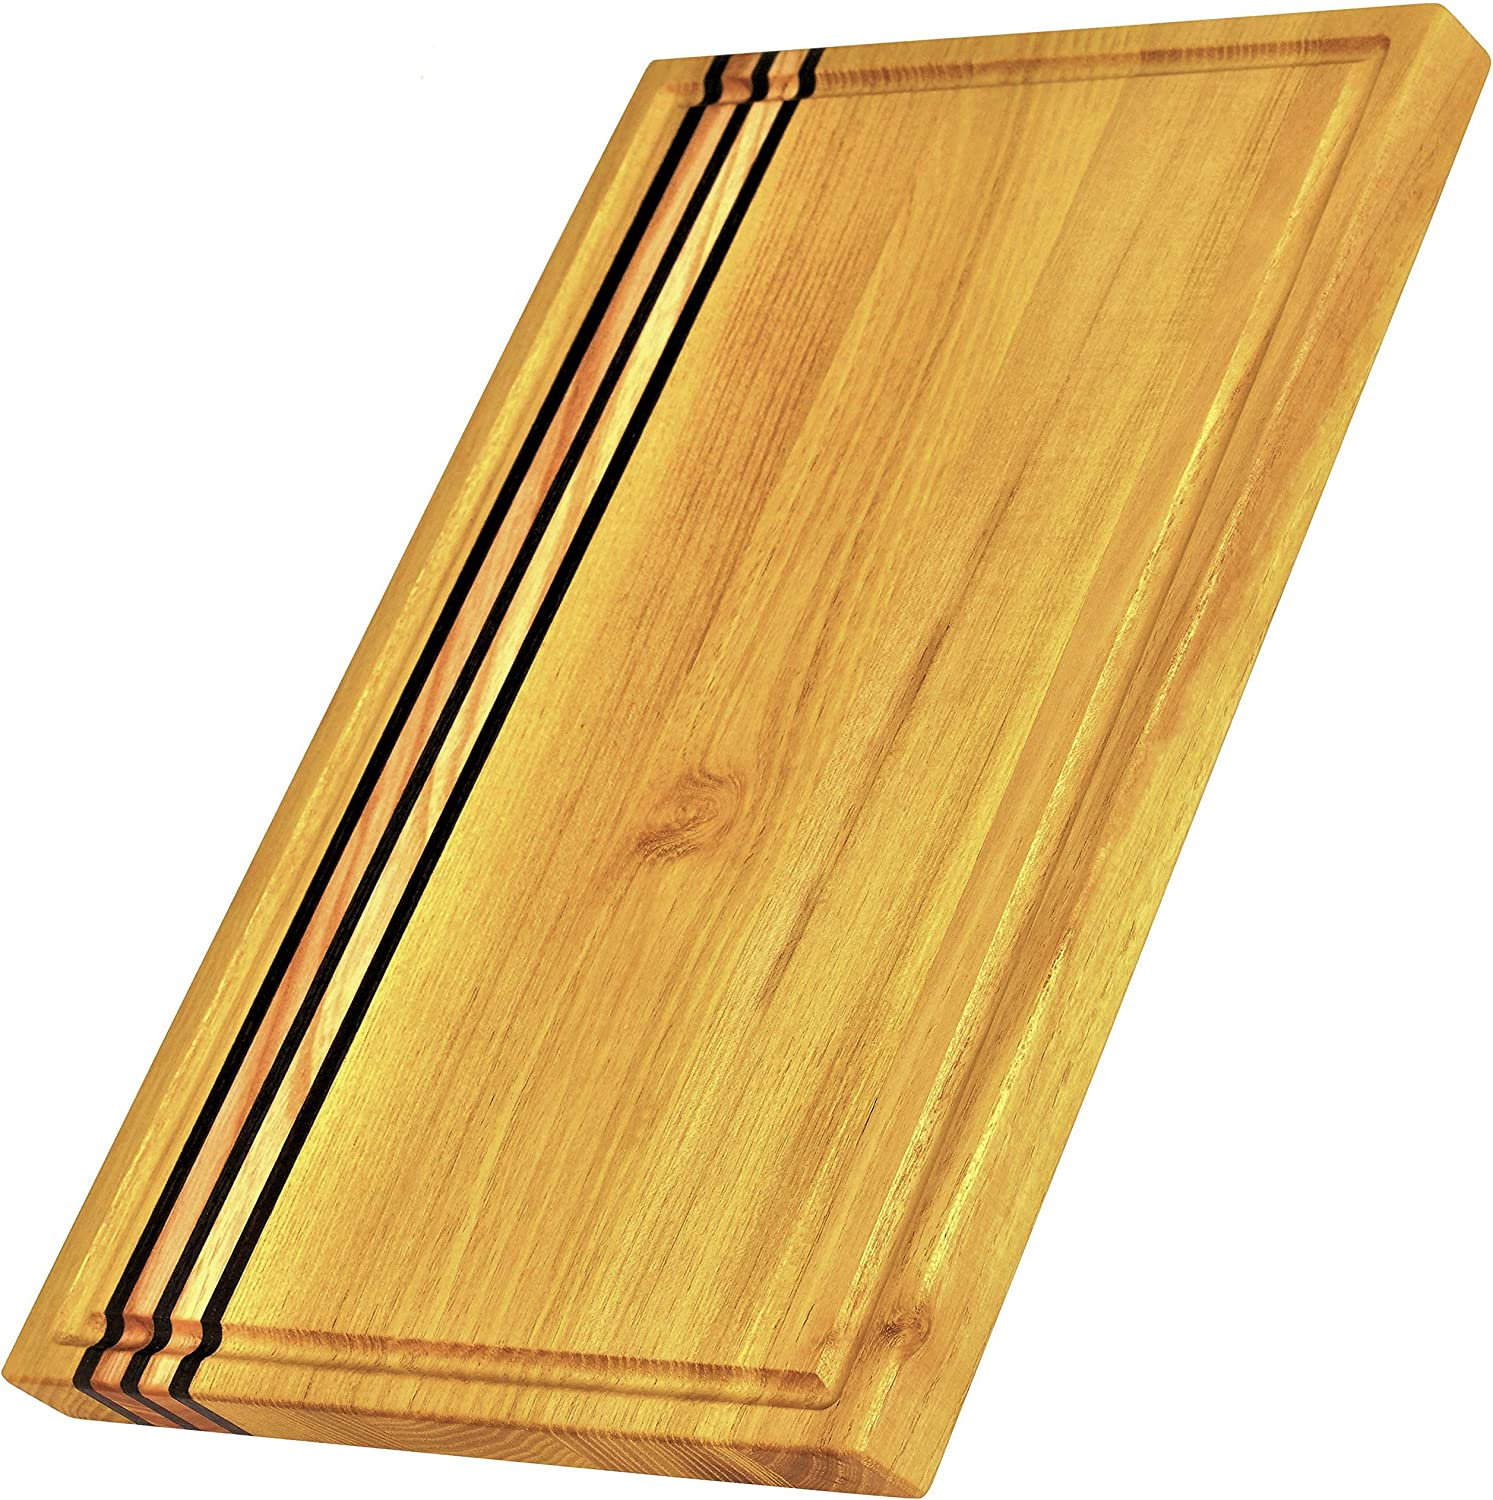 Large Multipurpose Wood New life Cutting Board Ranking TOP11 Acacia: 16x10x0. From Made